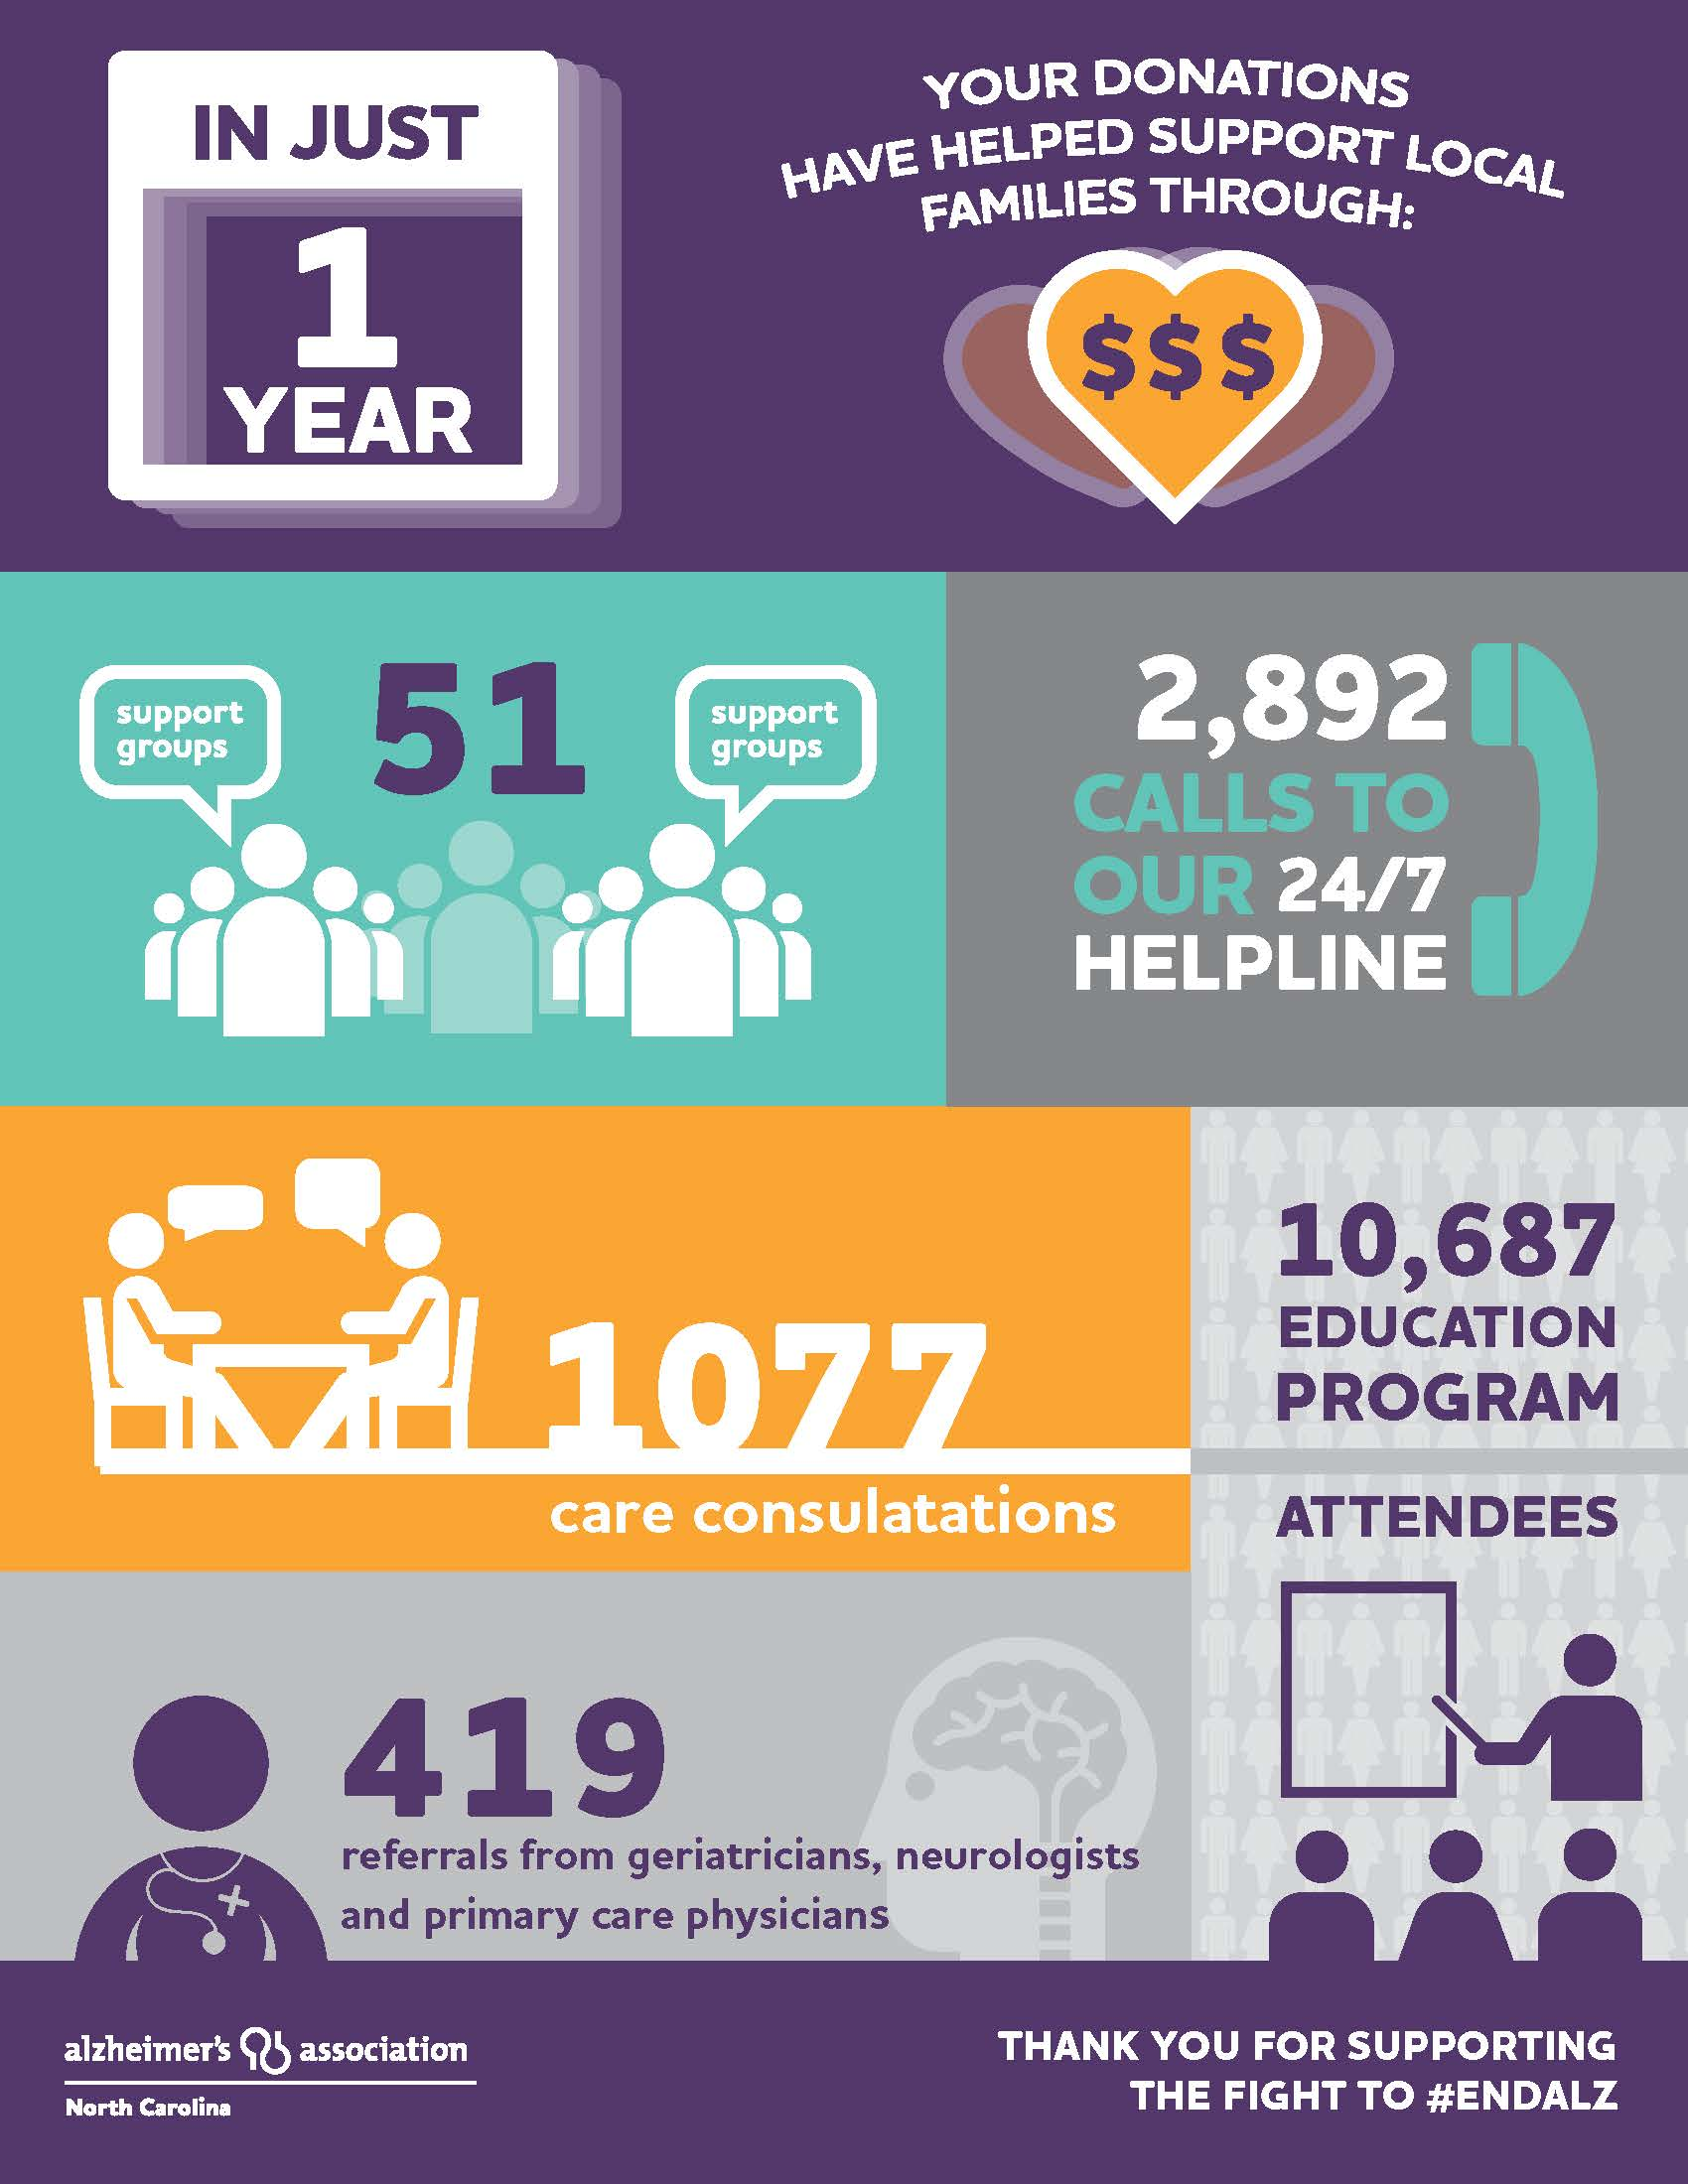 NC_ALZ_Care&Support_Infographic (1).jpg